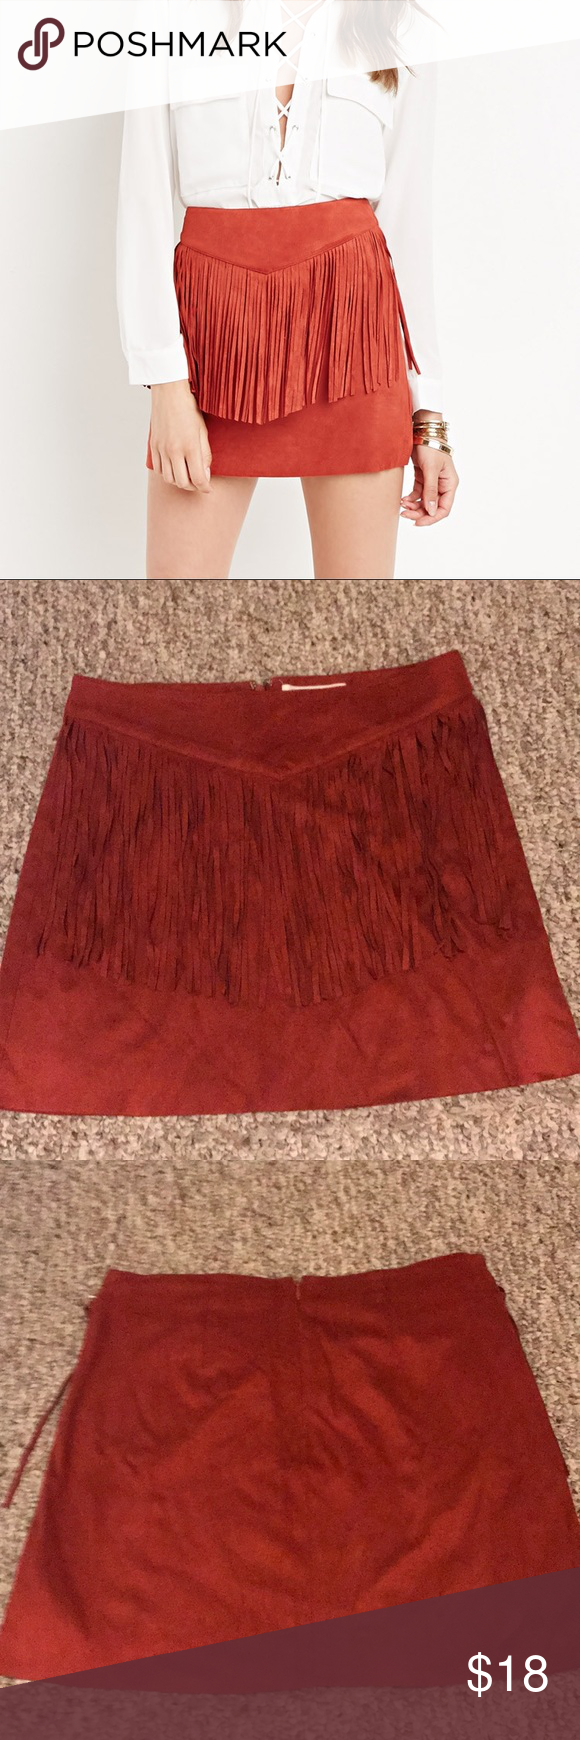 a3b3a1462 Forever 21 fringed faux suede skirt Faux suede fringed skirt size small (s) Forever  21 Skirts Mini